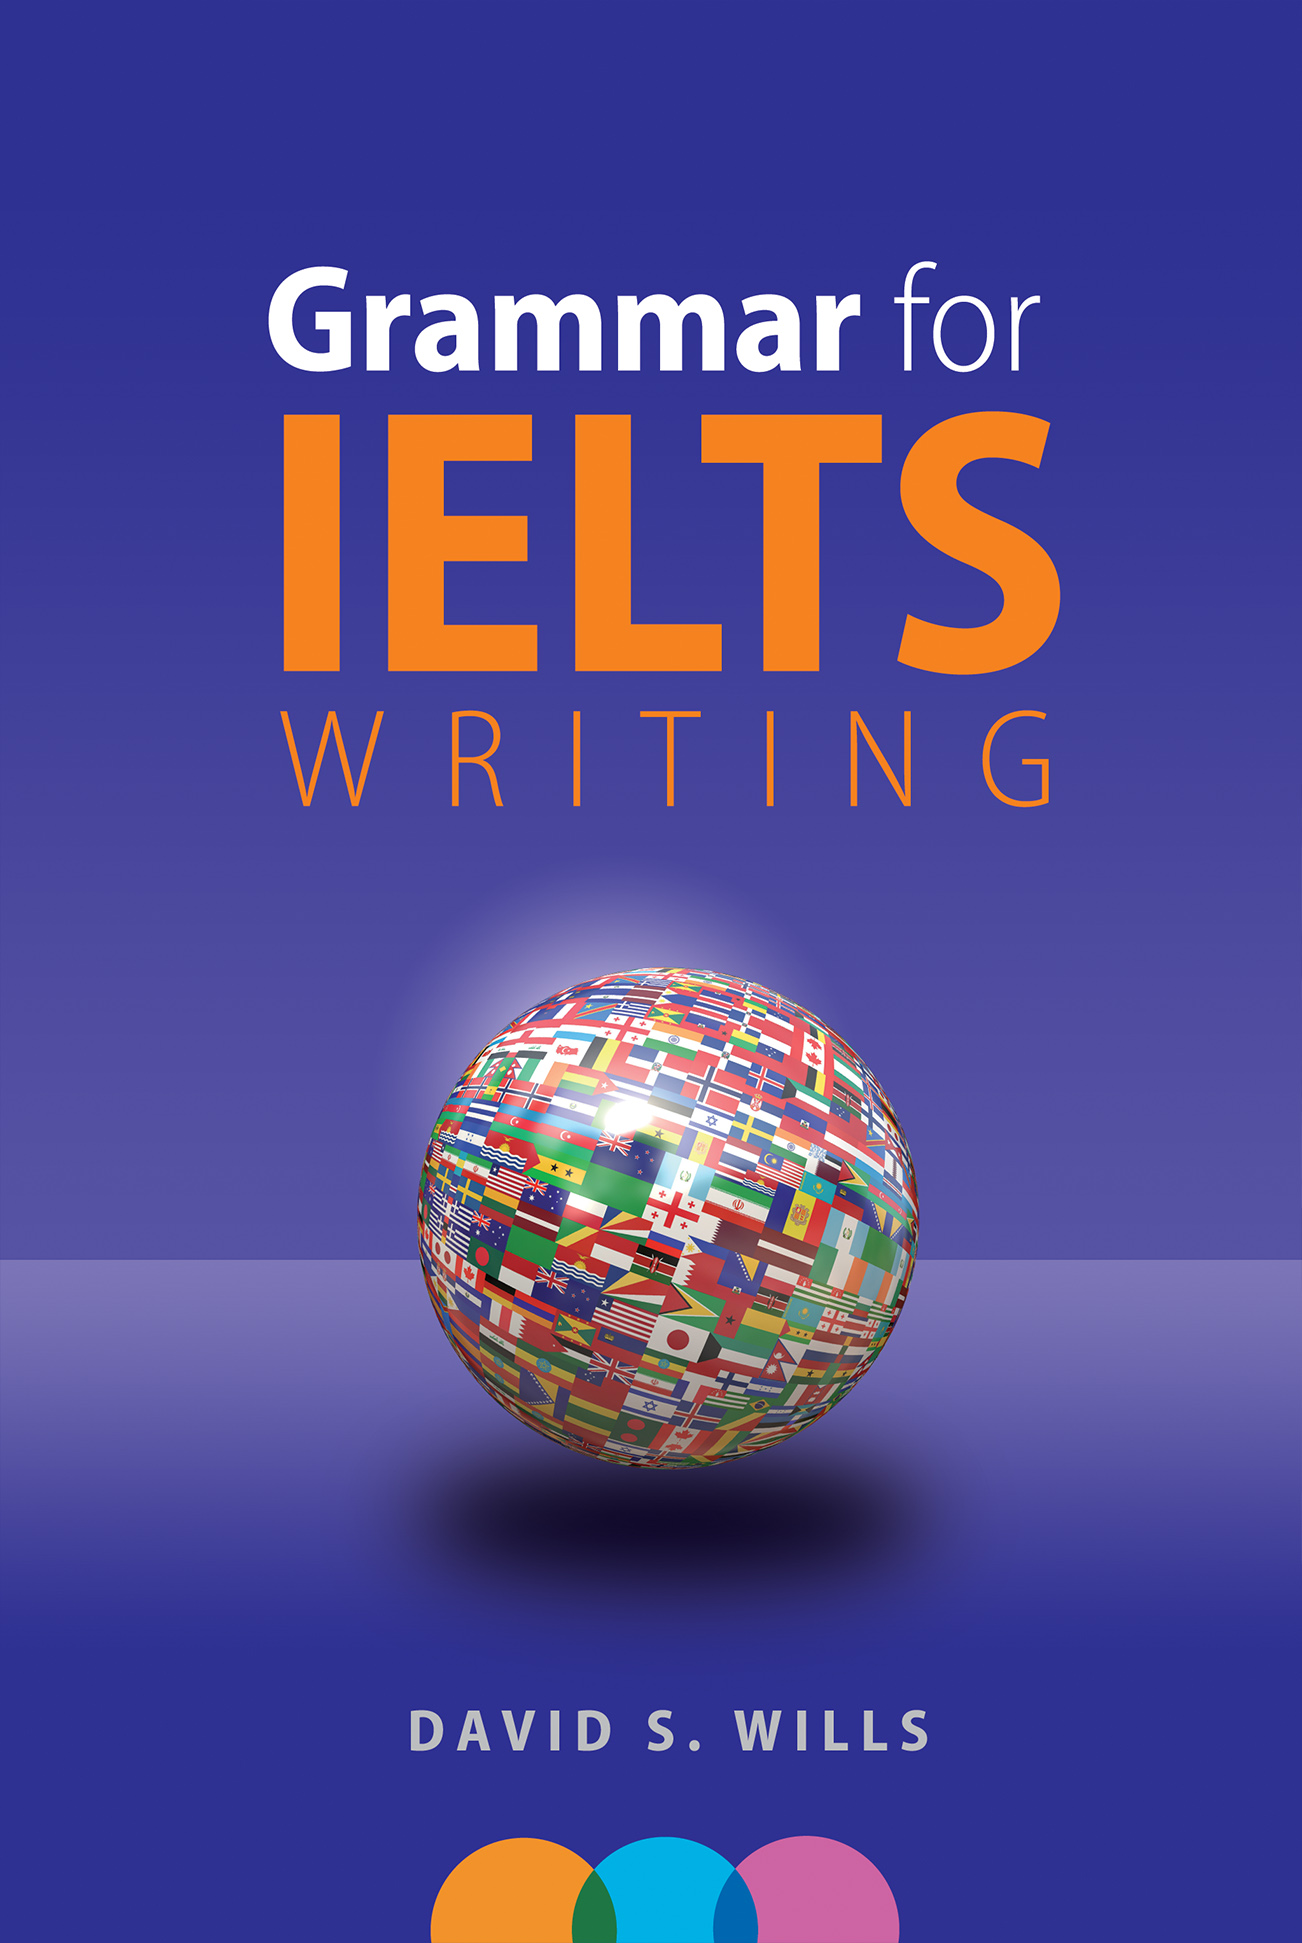 new cover Small - Summary Completion [IELTS Reading]